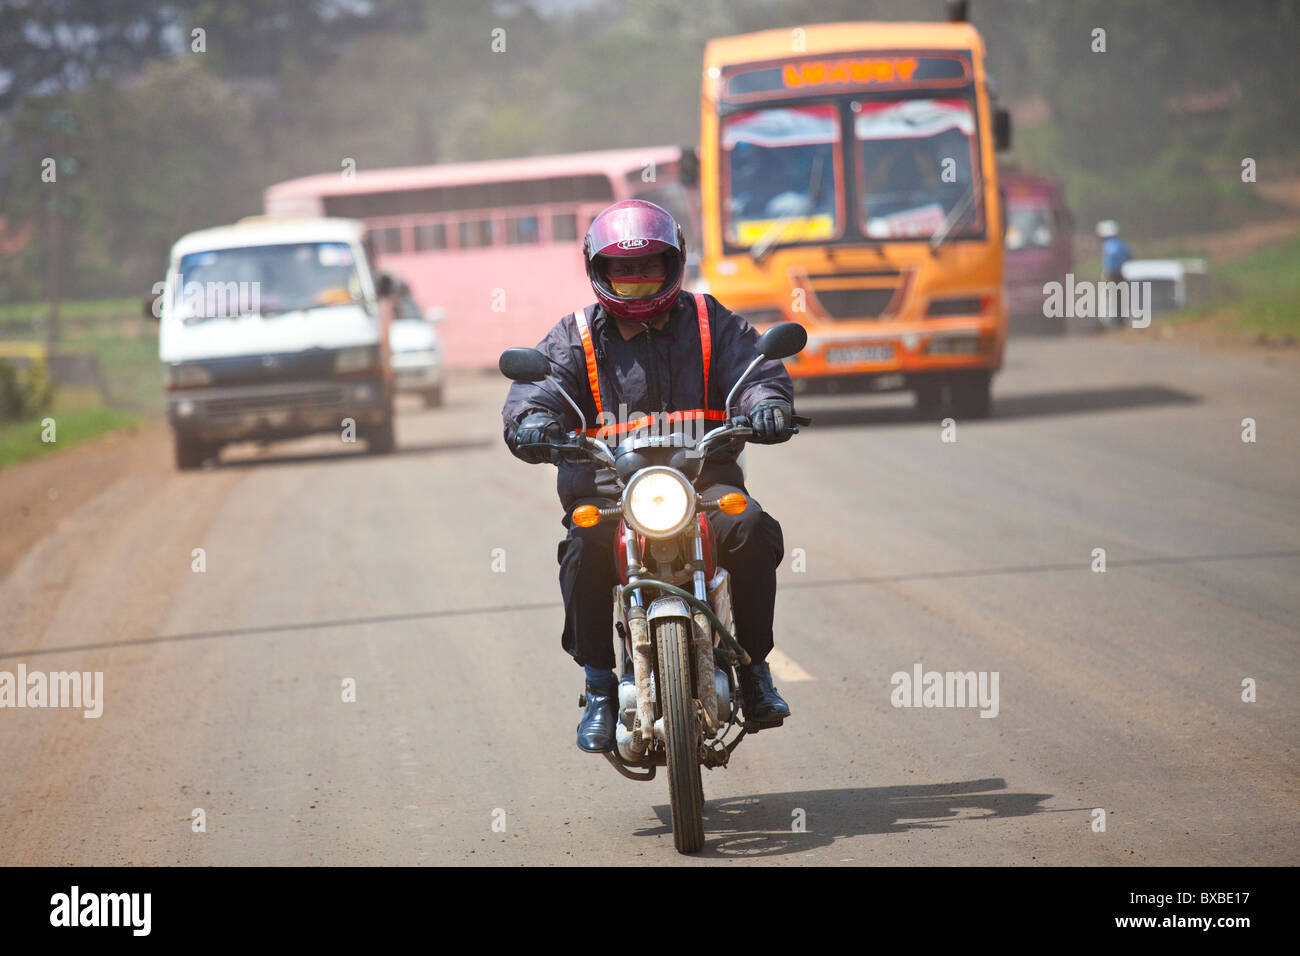 Motorcycle in traffic, Nairobi, Kenya - Stock Image